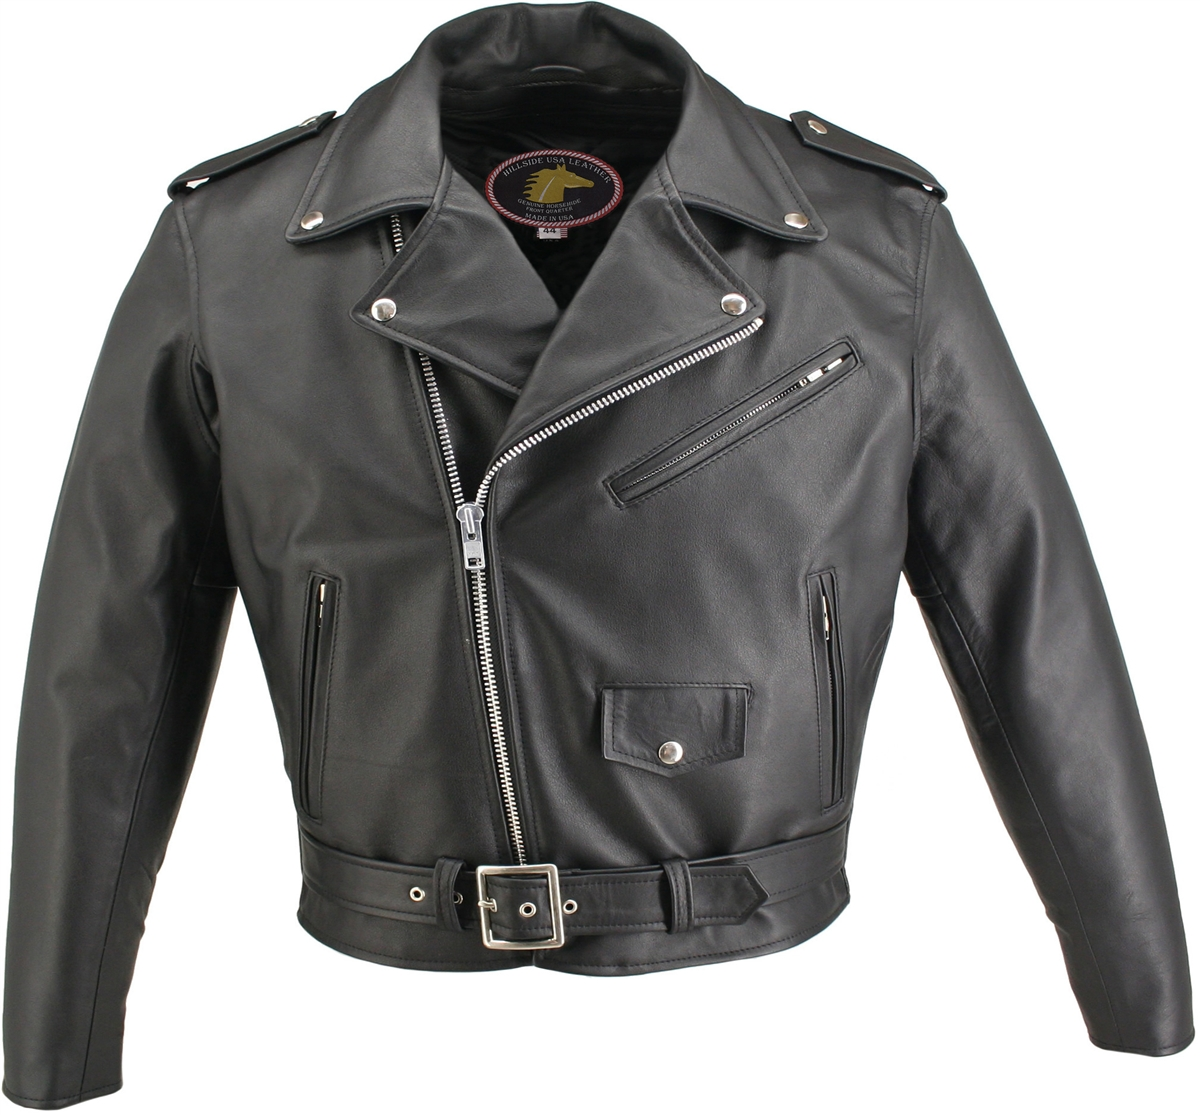 Men's Basic Motorcycle Horsehide Jacket. Beautiful, tough, stylish, practical, and elegant all in the Basic Motorcycle Horsehide Jacket. Our entire Horsehide collection feature YKK zippers, all leather lined pockets, two inside Leather Lined Gun Pockets,